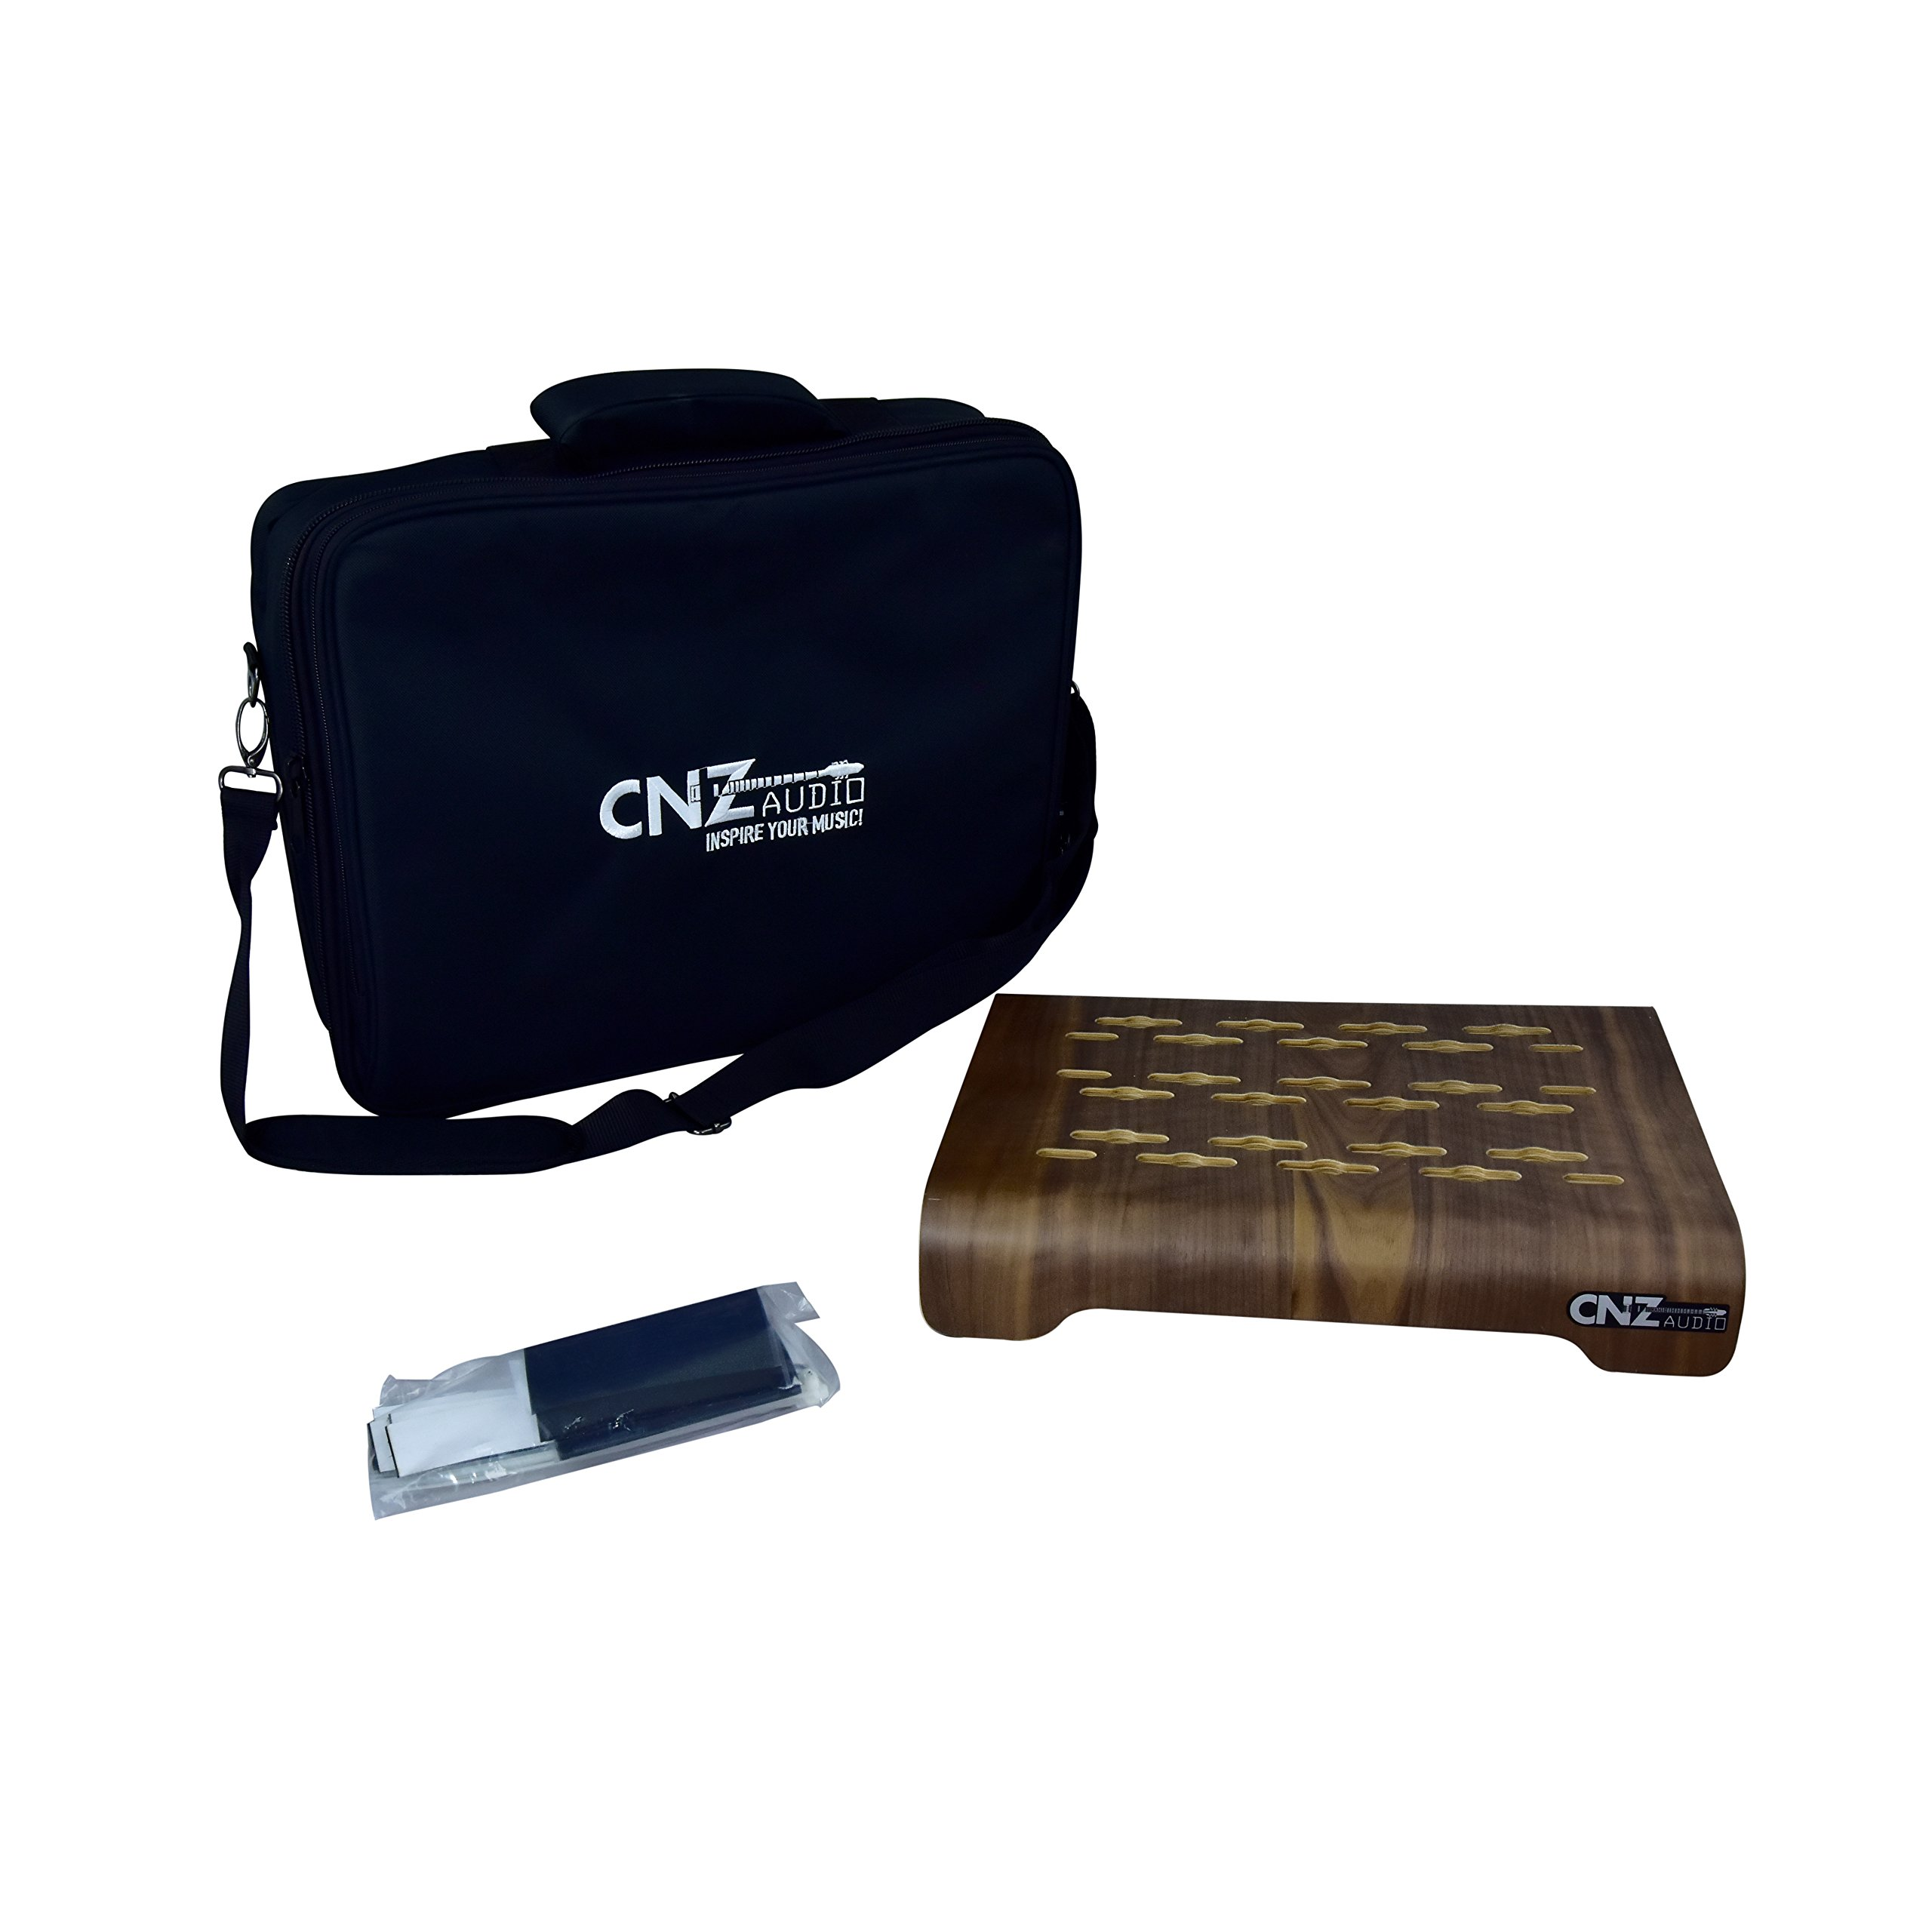 CNZ Audio Wooden Pedalboard Jumbo with Padded Case, Shoulder Strap, Velcro Tape and Zip Ties by CNZ Audio